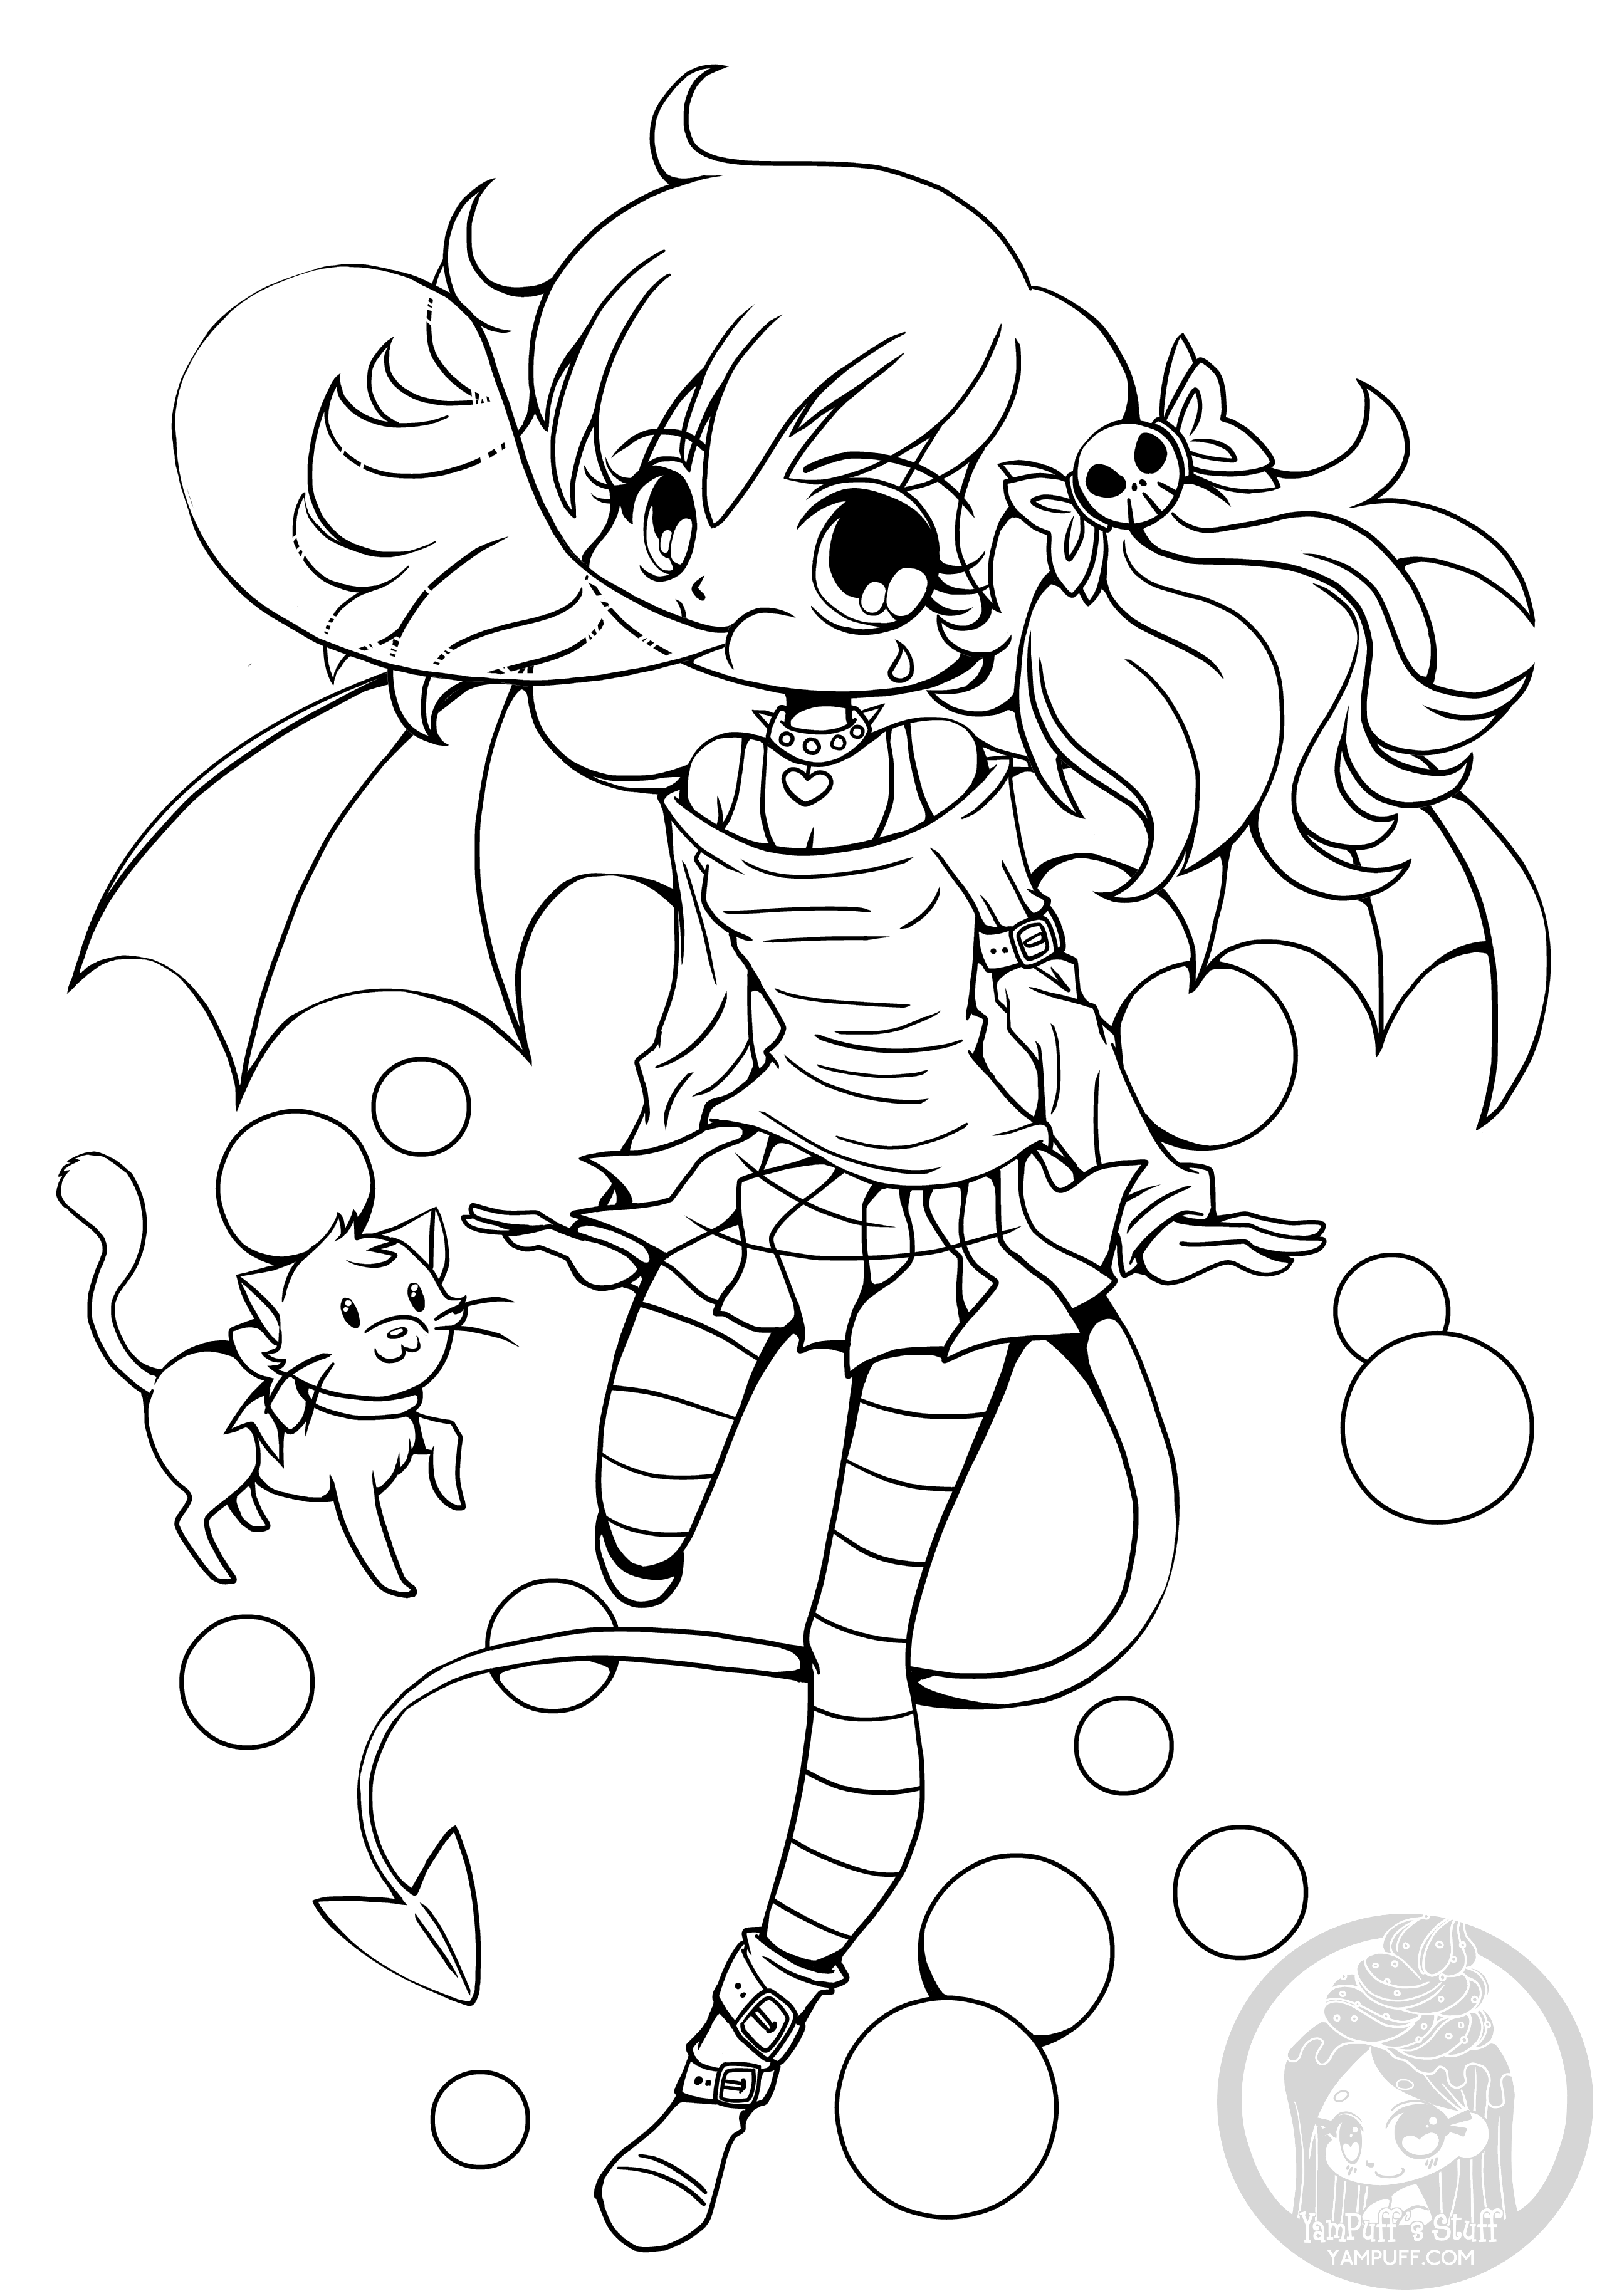 coloring pages chibi get this online printable chibi coloring pages 4g45s coloring chibi pages